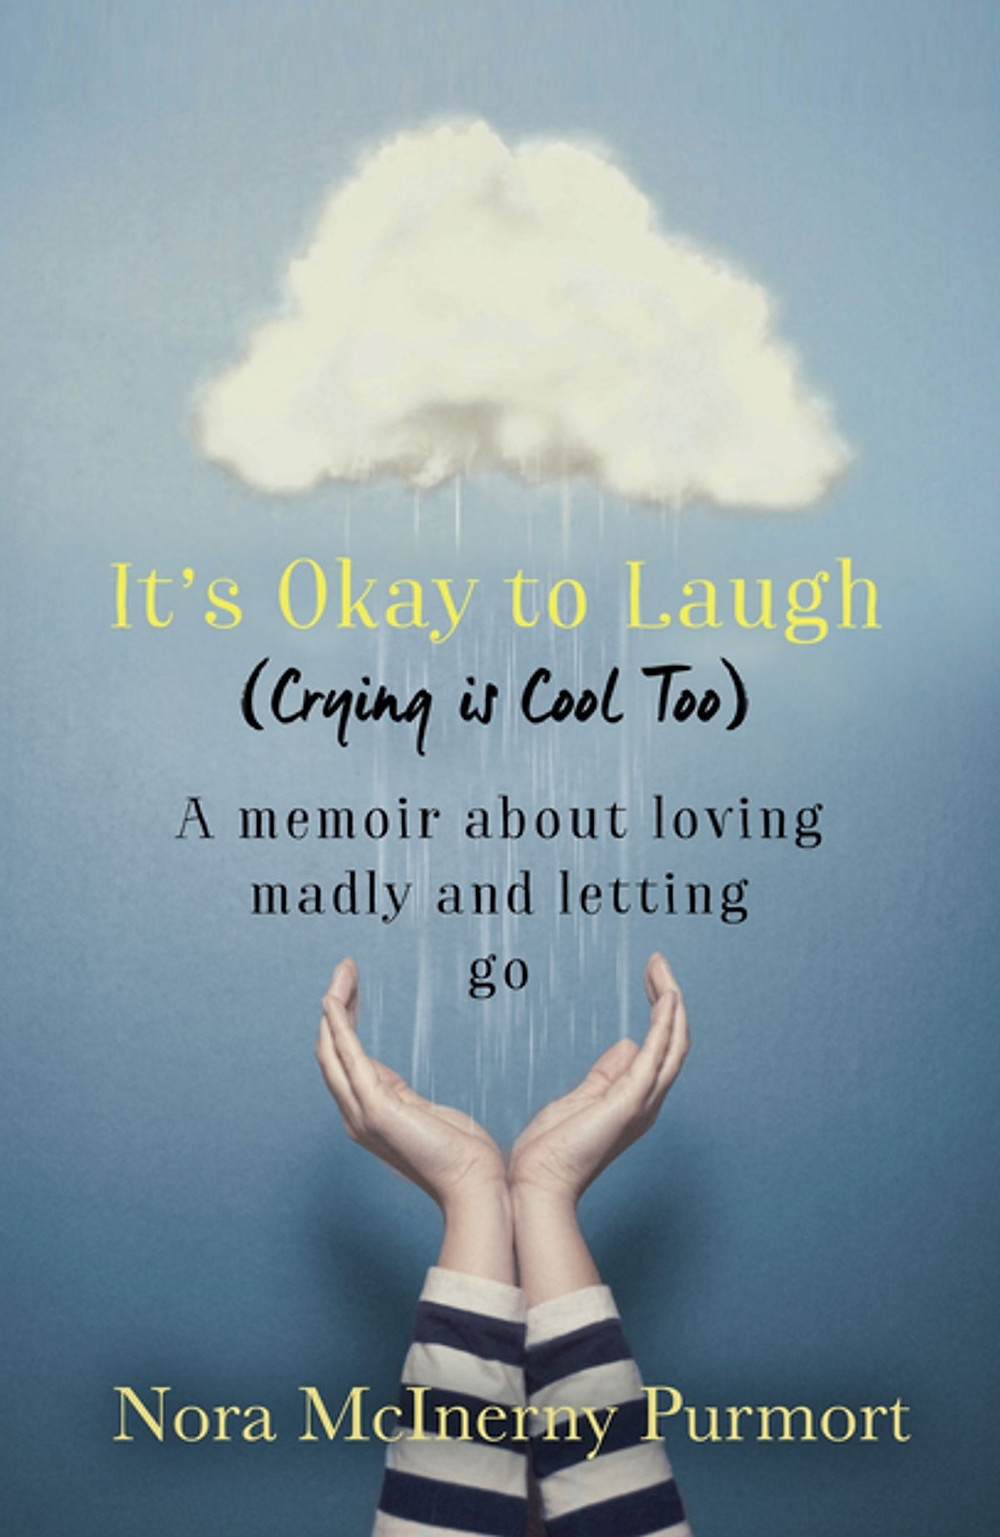 It's Okay to Laugh (Crying is Cool Too) by Nora McInerny thebookslut book reviews